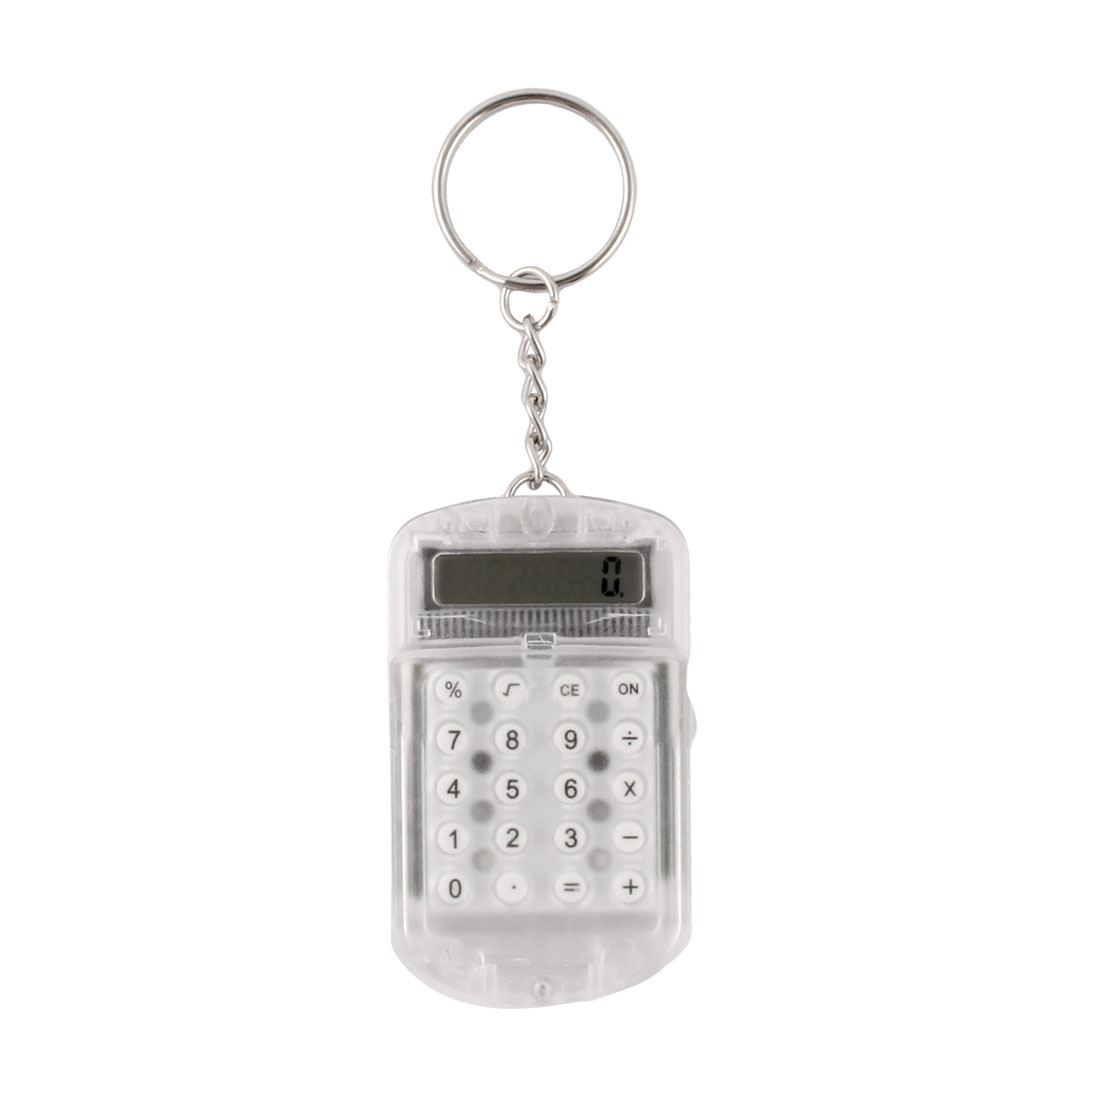 Digits Ultra Thin Pocket Mini Calculator with Key Ring Keychain Clear White